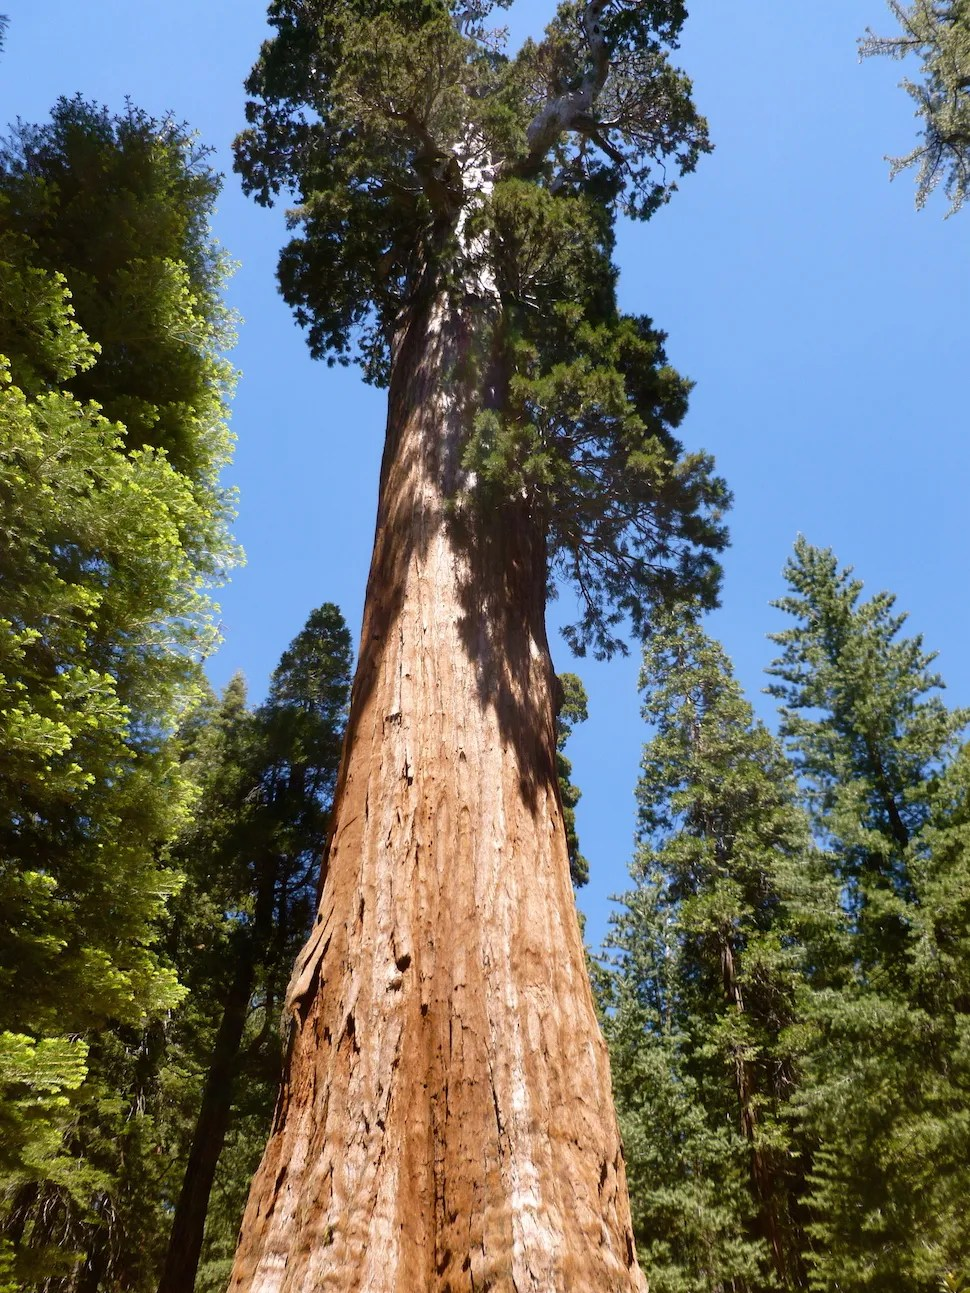 The Best National Parks to See Gigantic Trees